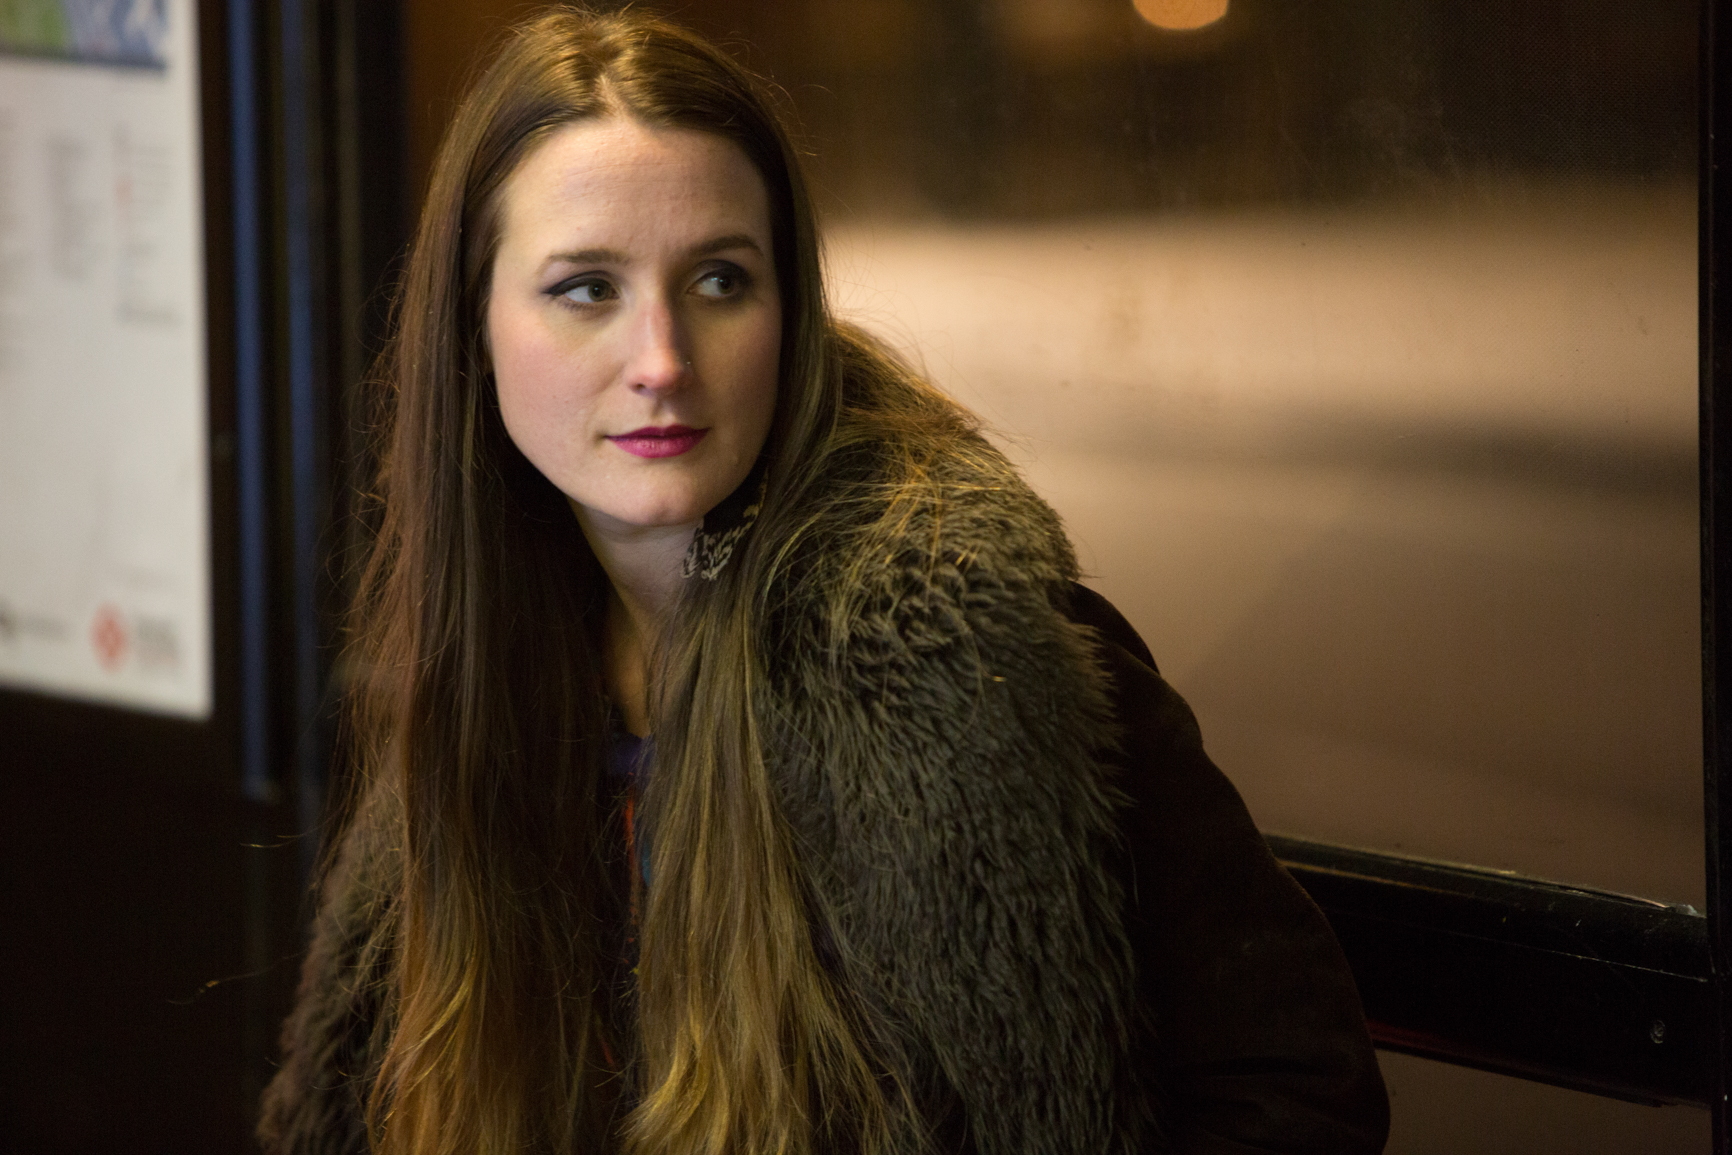 Holly Holden, London Singer at night in chelsea by bus stop